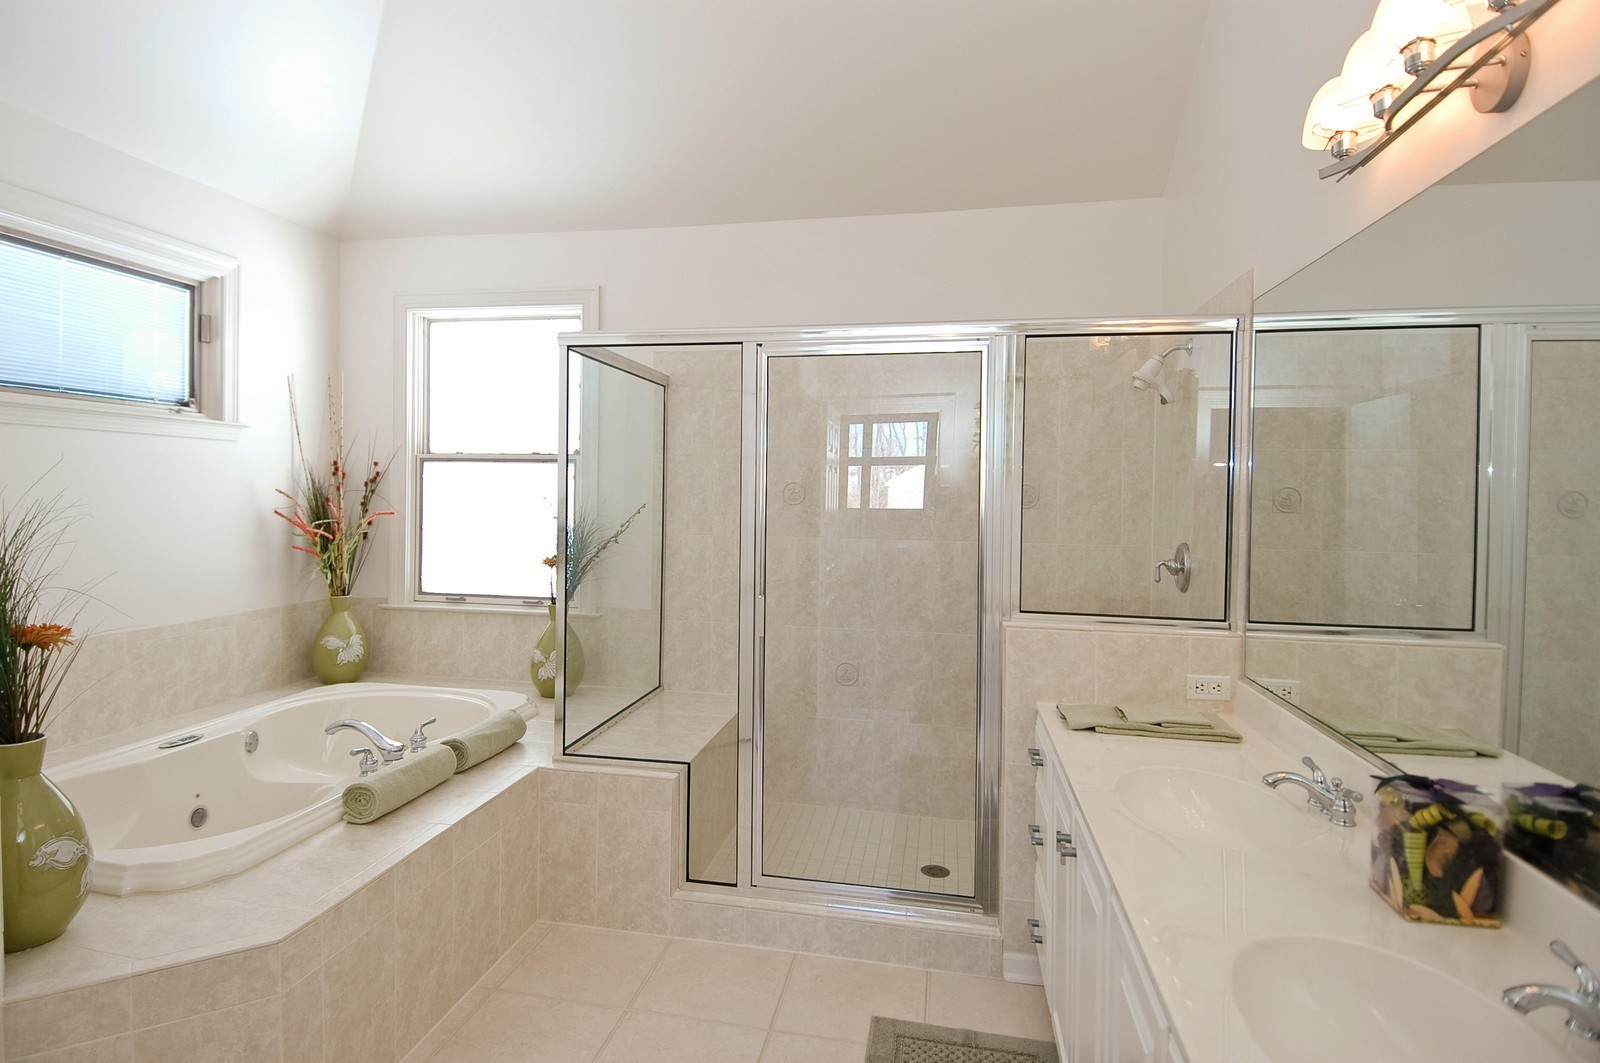 Real Estate Photography - 745 Ceresia, Crystal Lake, IL, 60014 - Bathroom